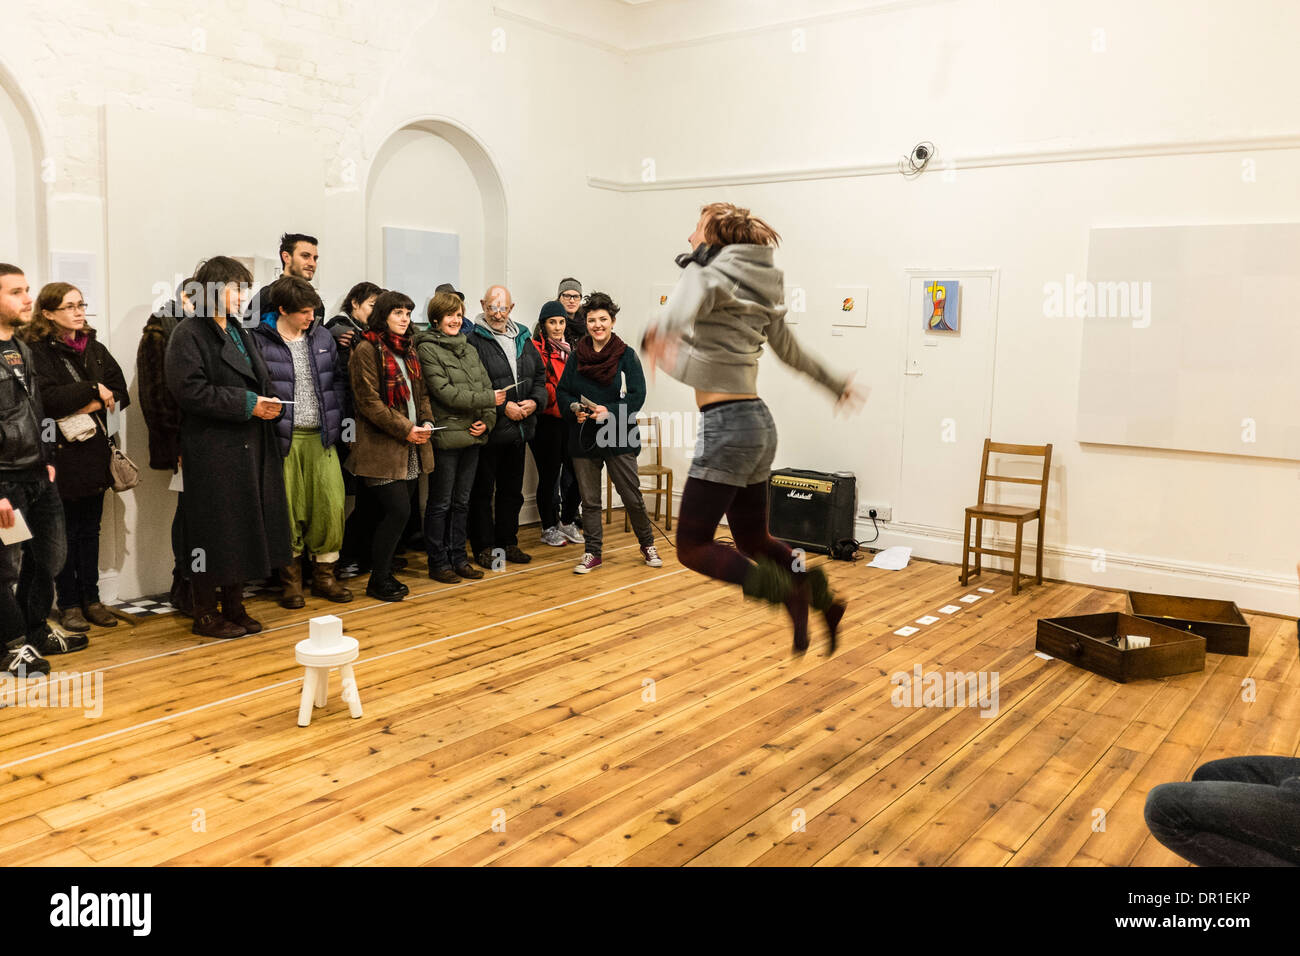 Performance Art - people watching a woman artist performing live art in a gallery UK - Stock Image